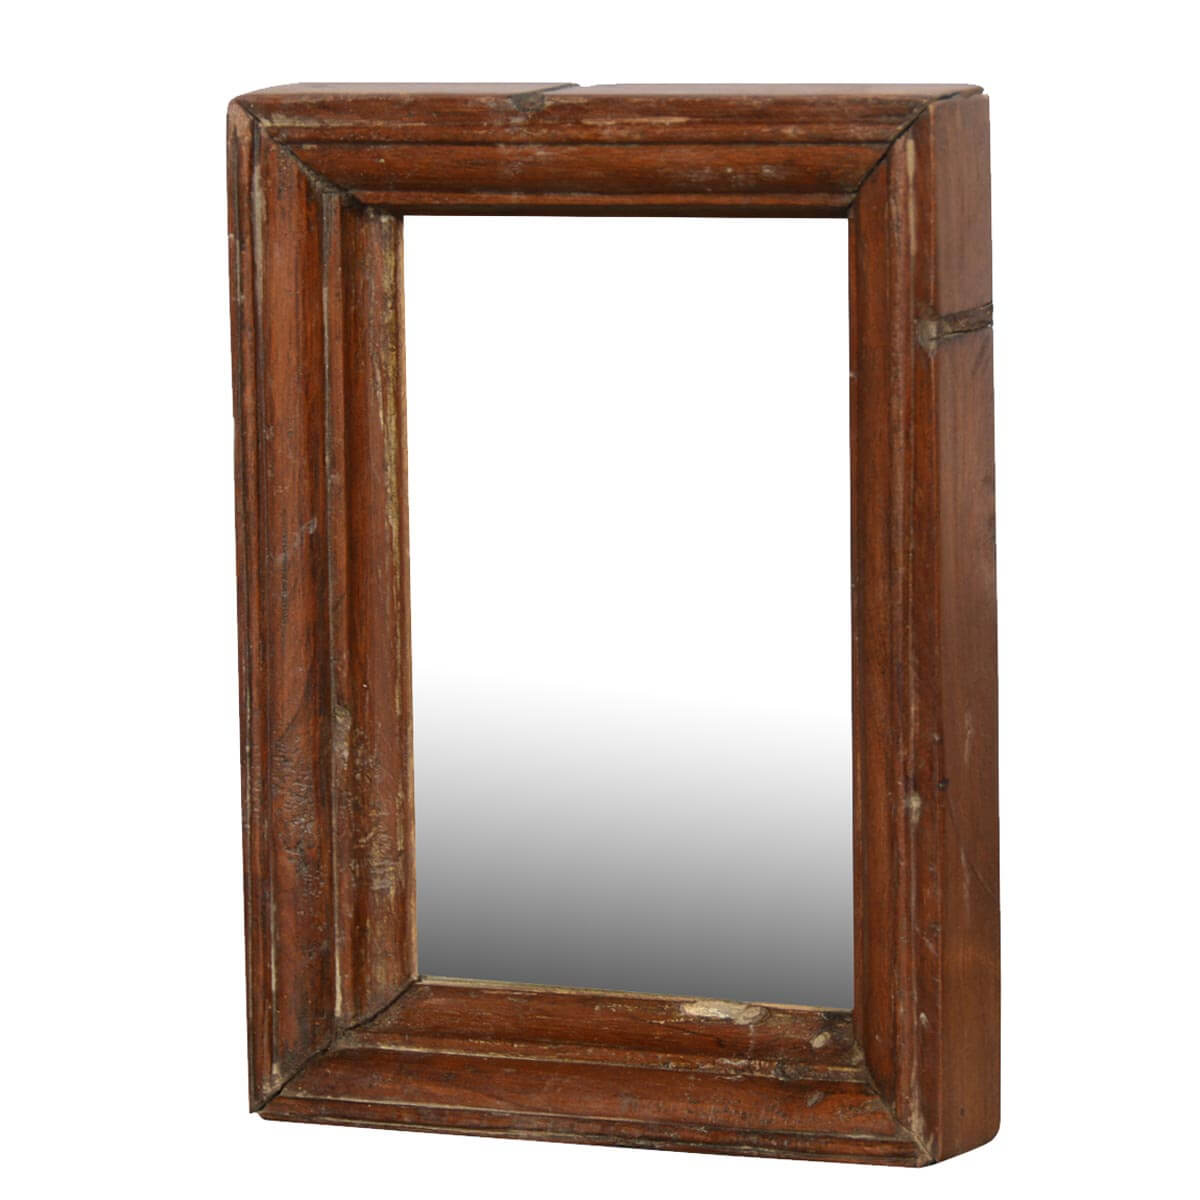 Rustic farmhouse reclaimed wood handmade wall mirror frame for Rustic mirror